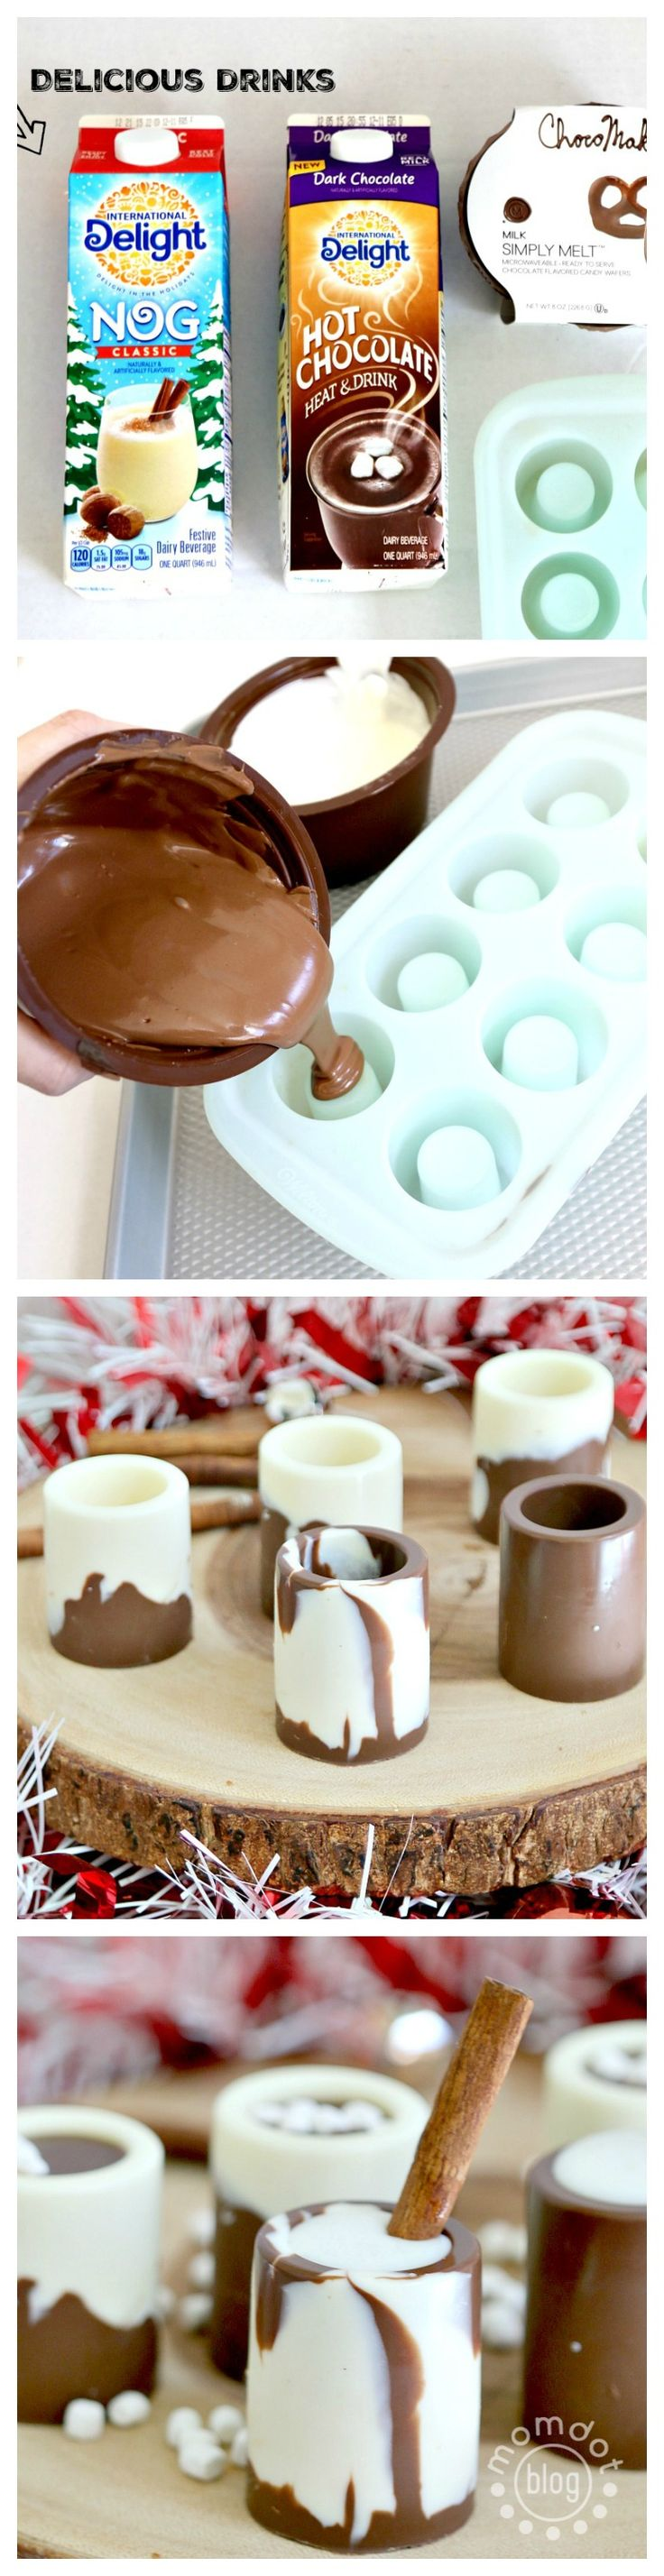 Egg Nog and Chocolate Shooters, How to make Egg Nog Shot glasses like a boss !